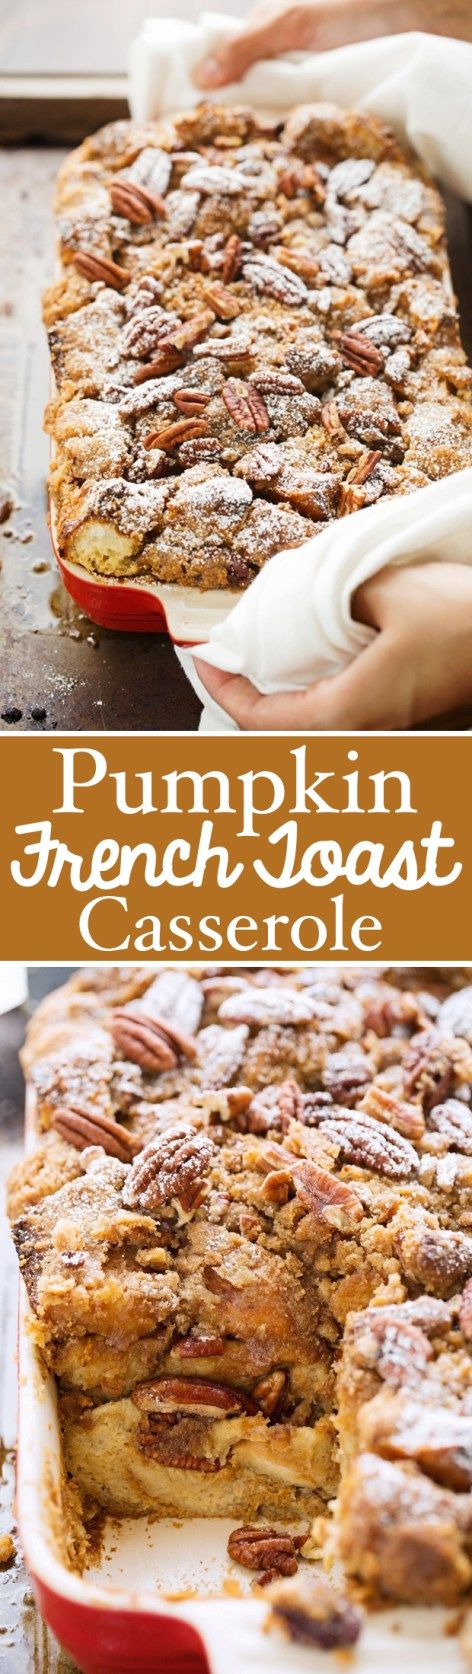 Pumpkin French Toast Casserole - This recipe is super friendly to make ahead of time and perfect for entertaining brunch guests of for Saturday morning breakfast! #pumpkinfrenchtoast #frenchtoastcasserole #frenchtoast | Littlespicejar.com More